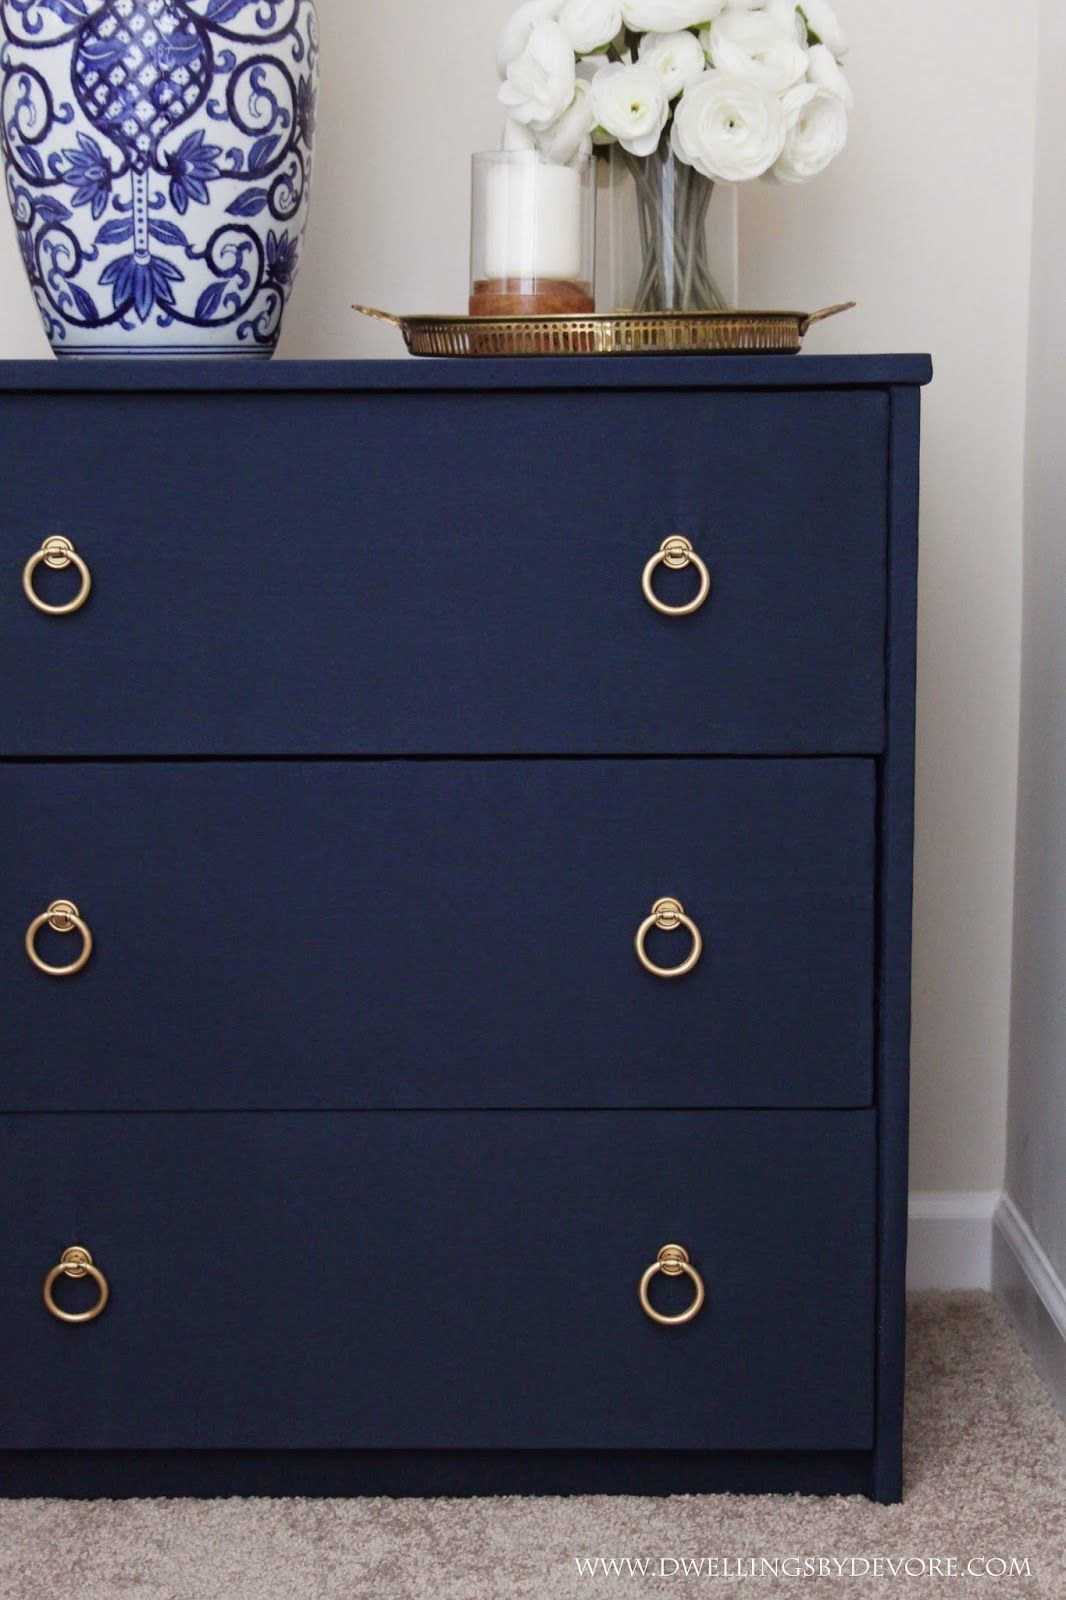 Diy Fabric Covered Nightstand Navy Blue Diy Home Decor